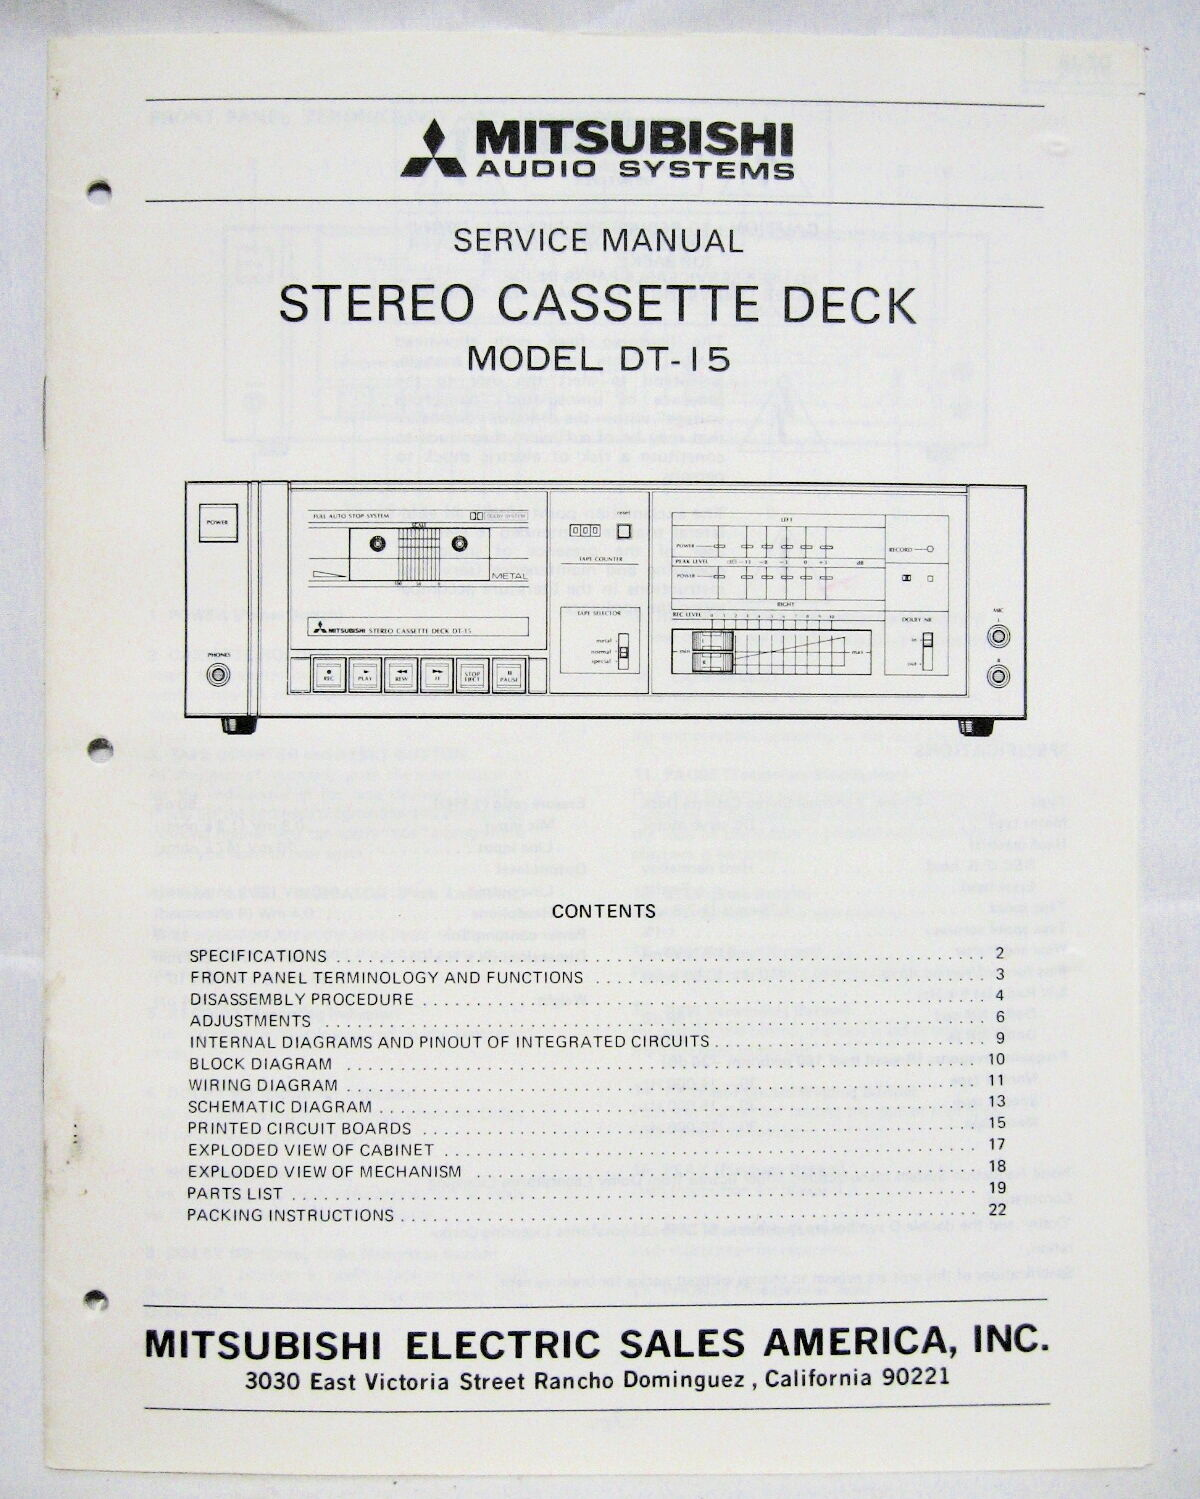 Mitsubishi Service Manual Car Minicab U62t Wiring Diagram Dt 15 Cassette Deck Original 8 75